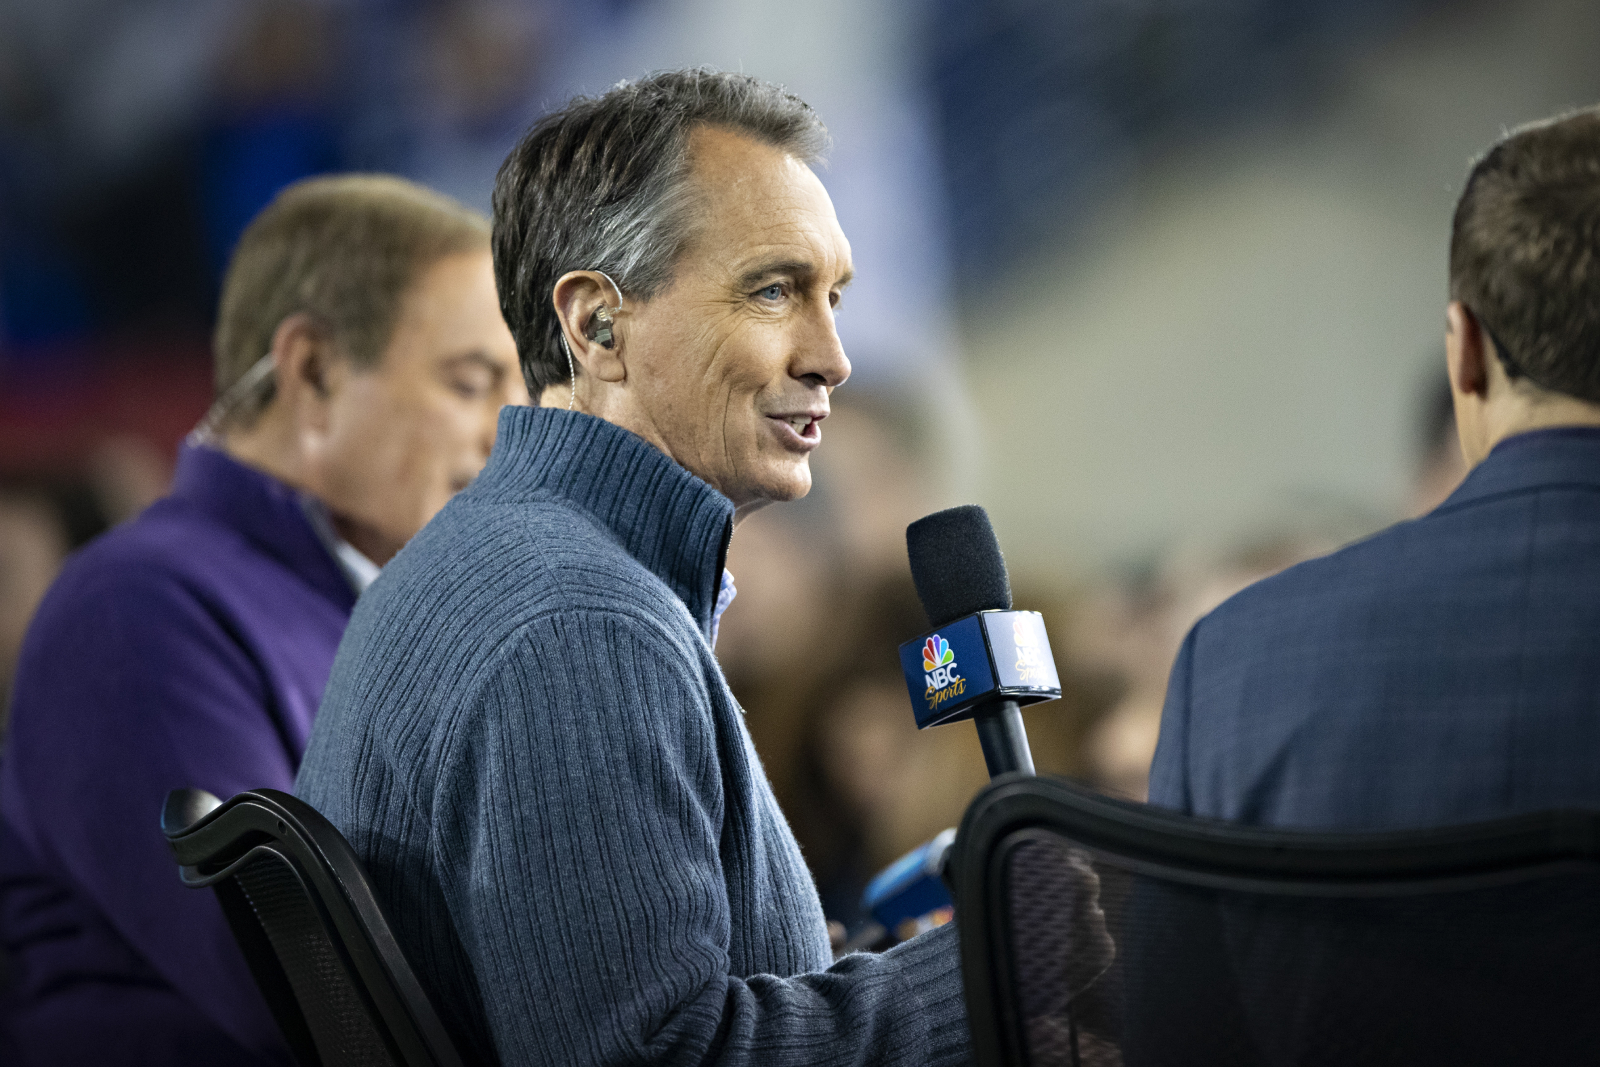 Cris Collinsworth has been around the NFL for a long time. He has a rule that could potentially help the league with one of its big problems.